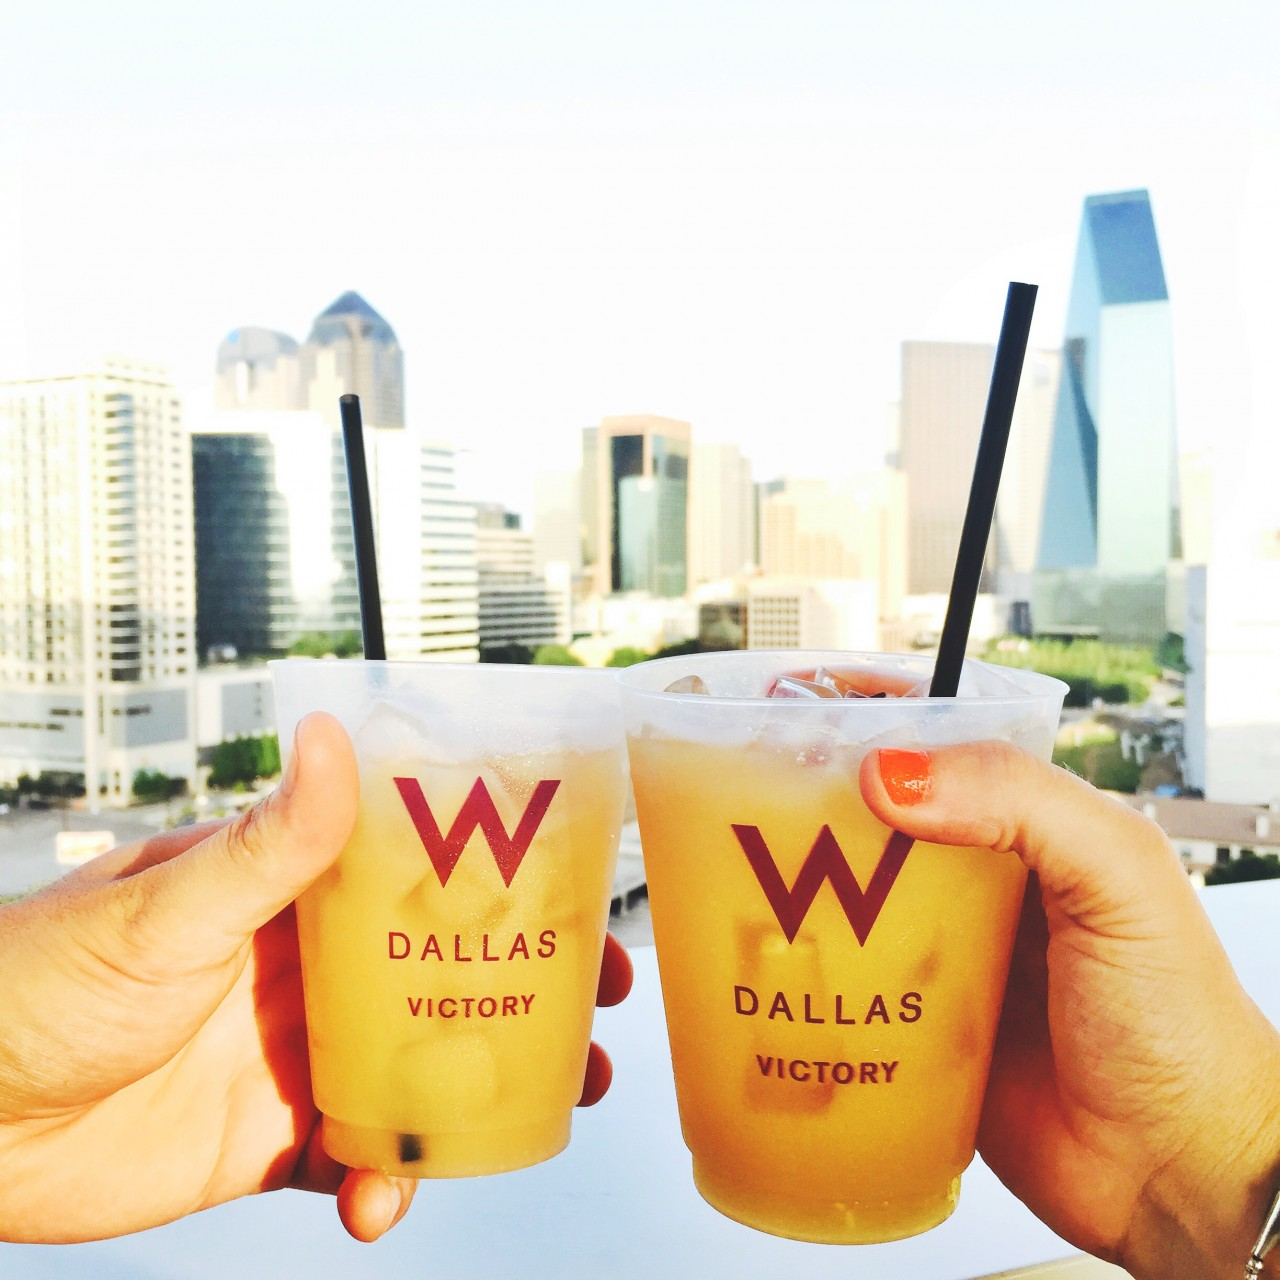 The W Hotel Dallas - Where to Stay in Dallas